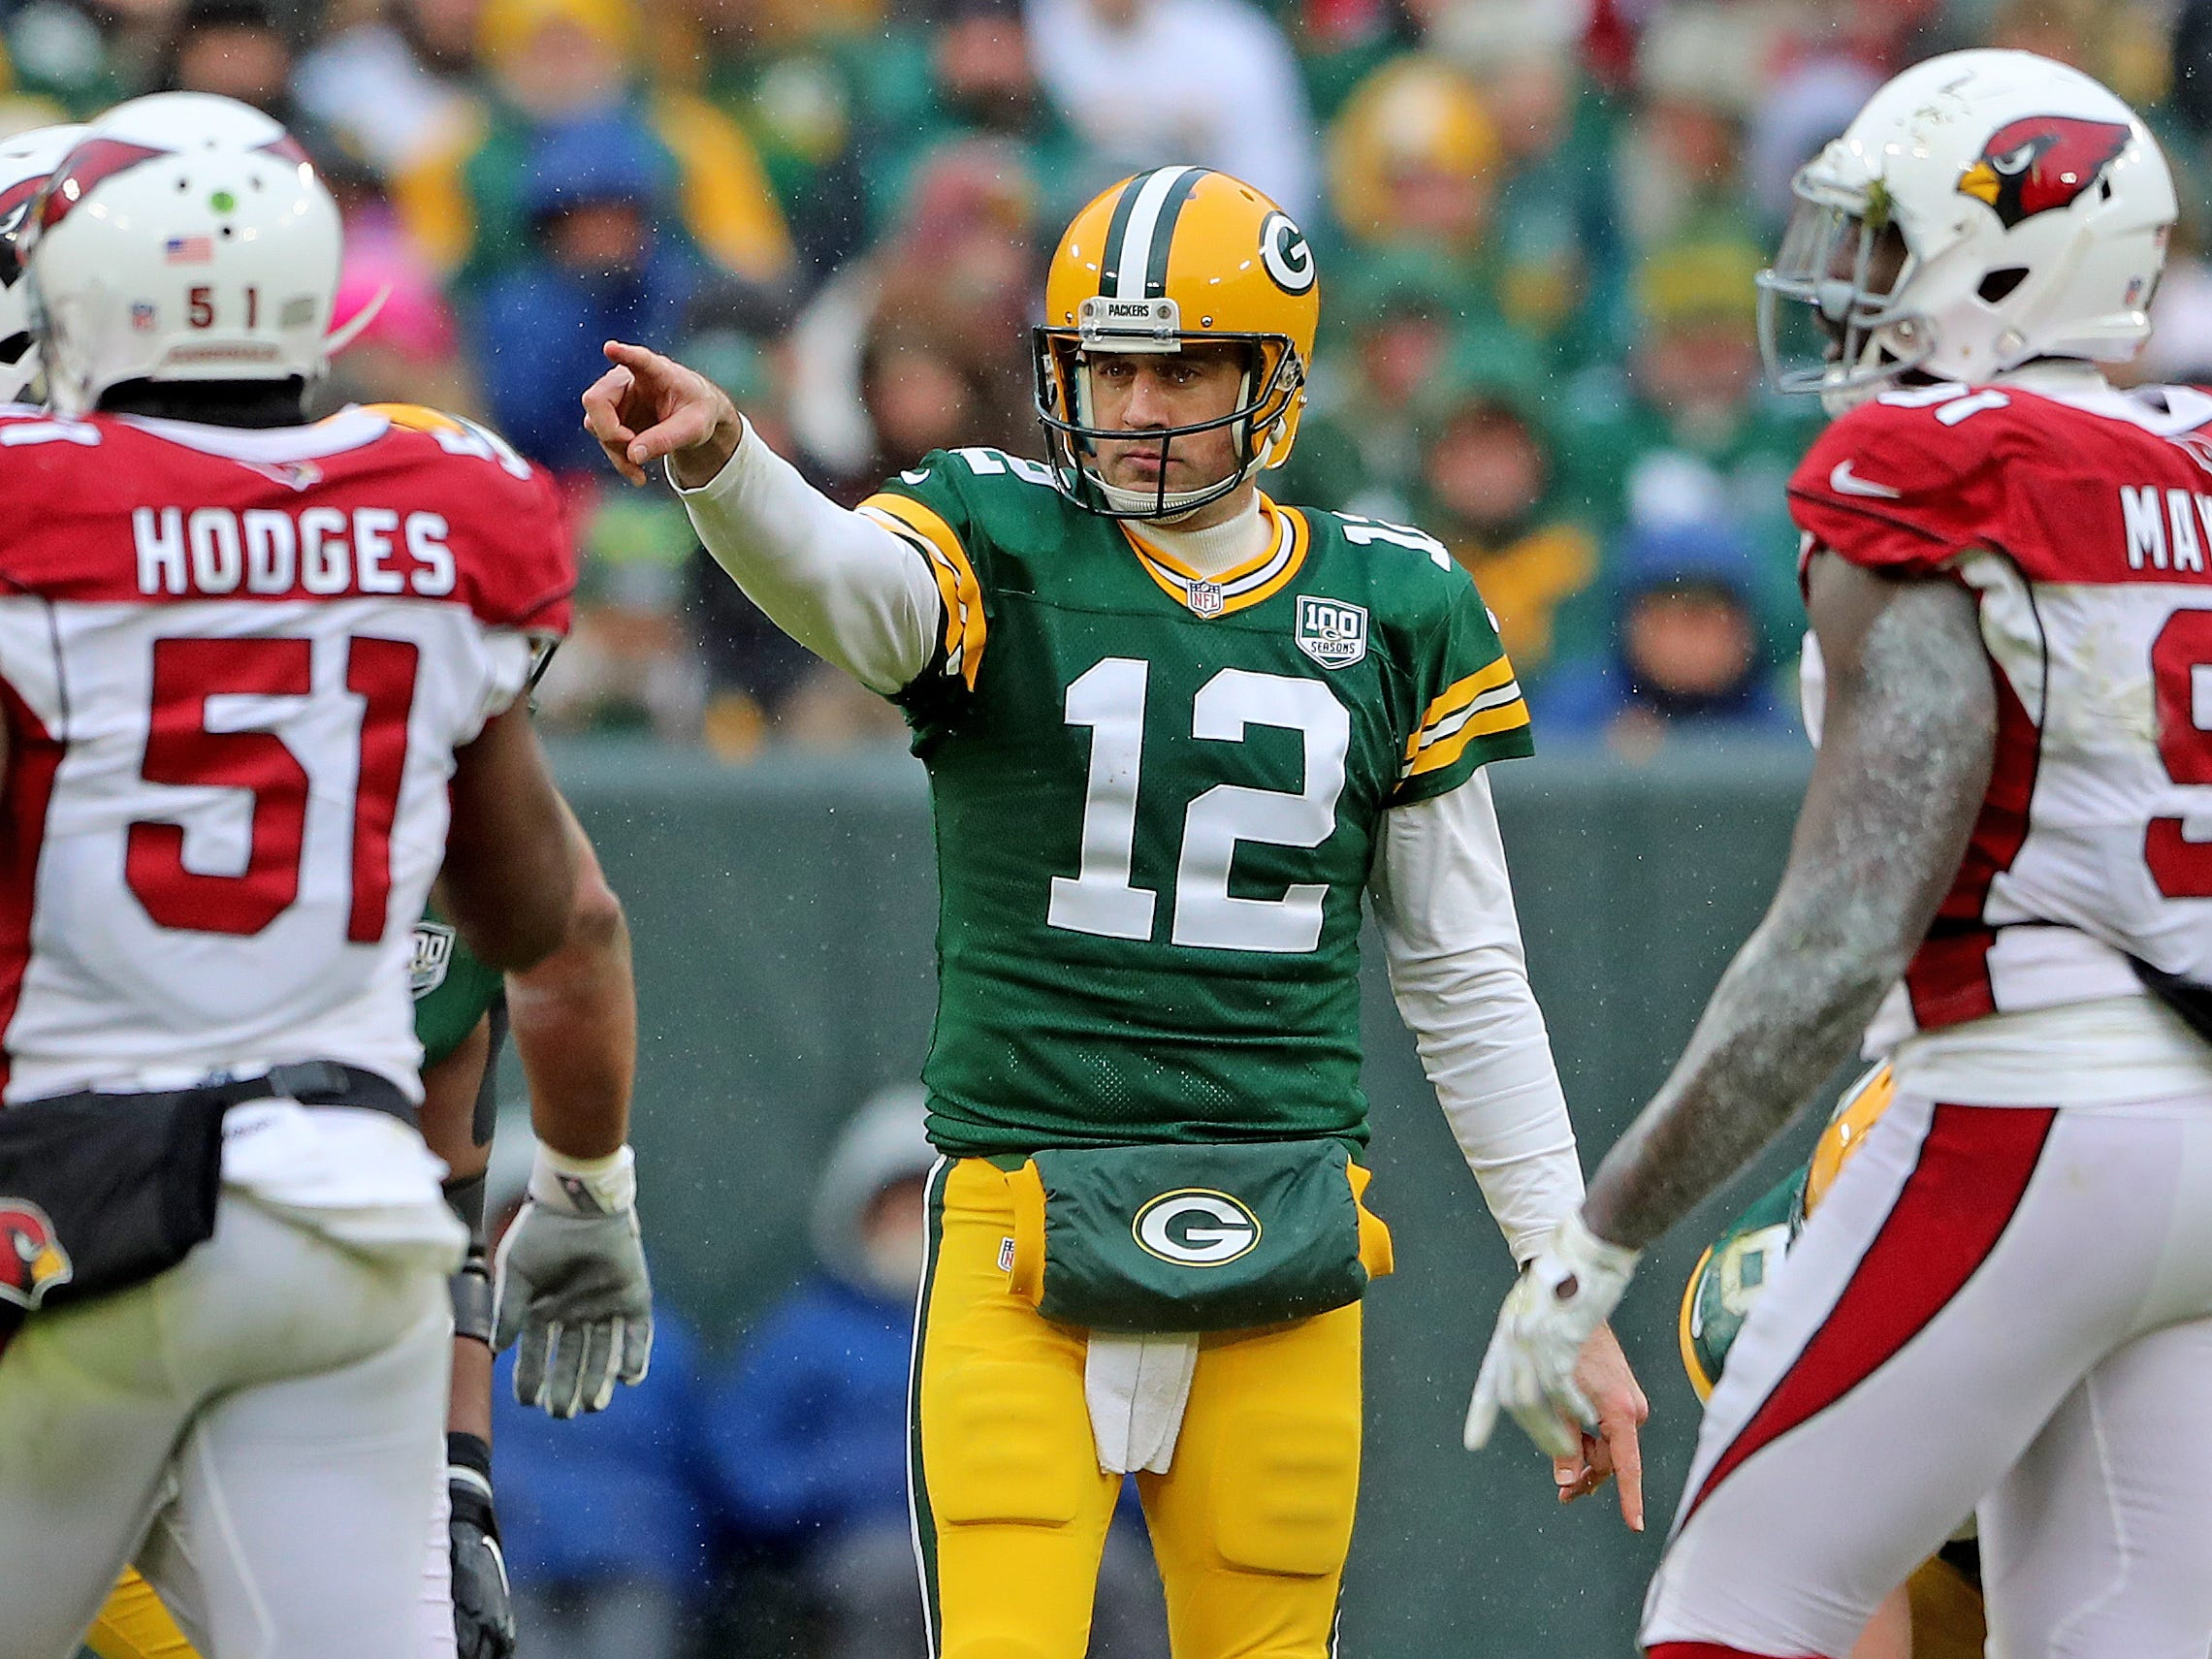 Green Bay Packers quarterback Aaron Rodgers (12) points at the defense after a flag in the game against the Arizona Cardinals Sunday, December 2, 2018 at Lambeau Field in Green Bay, Wis.  Jim Matthews/USA TODAY NETWORK-Wis